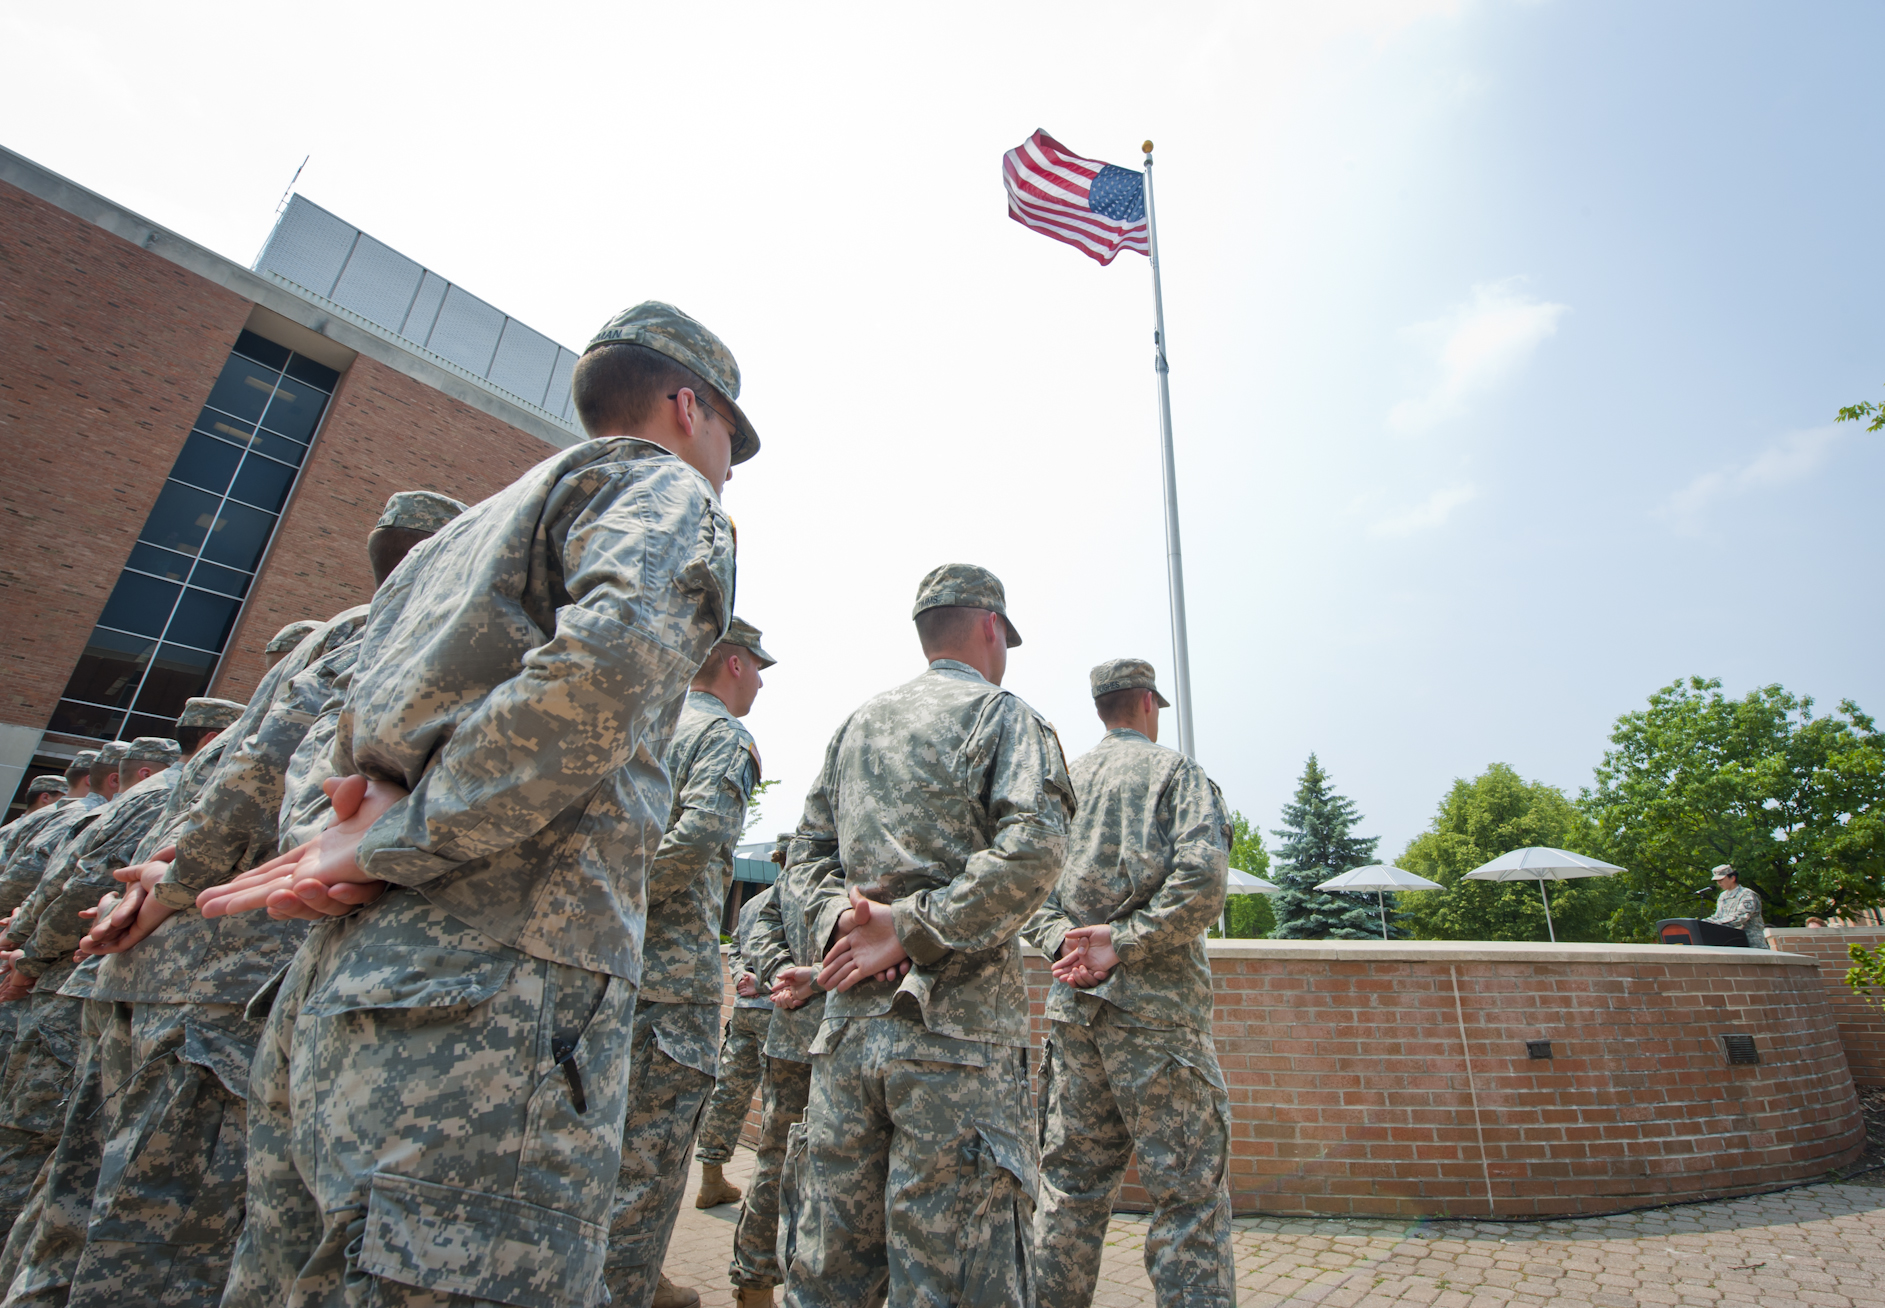 Wright State Army ROTC cadets stand in formation as their commander makes remarks about Memorial Day.